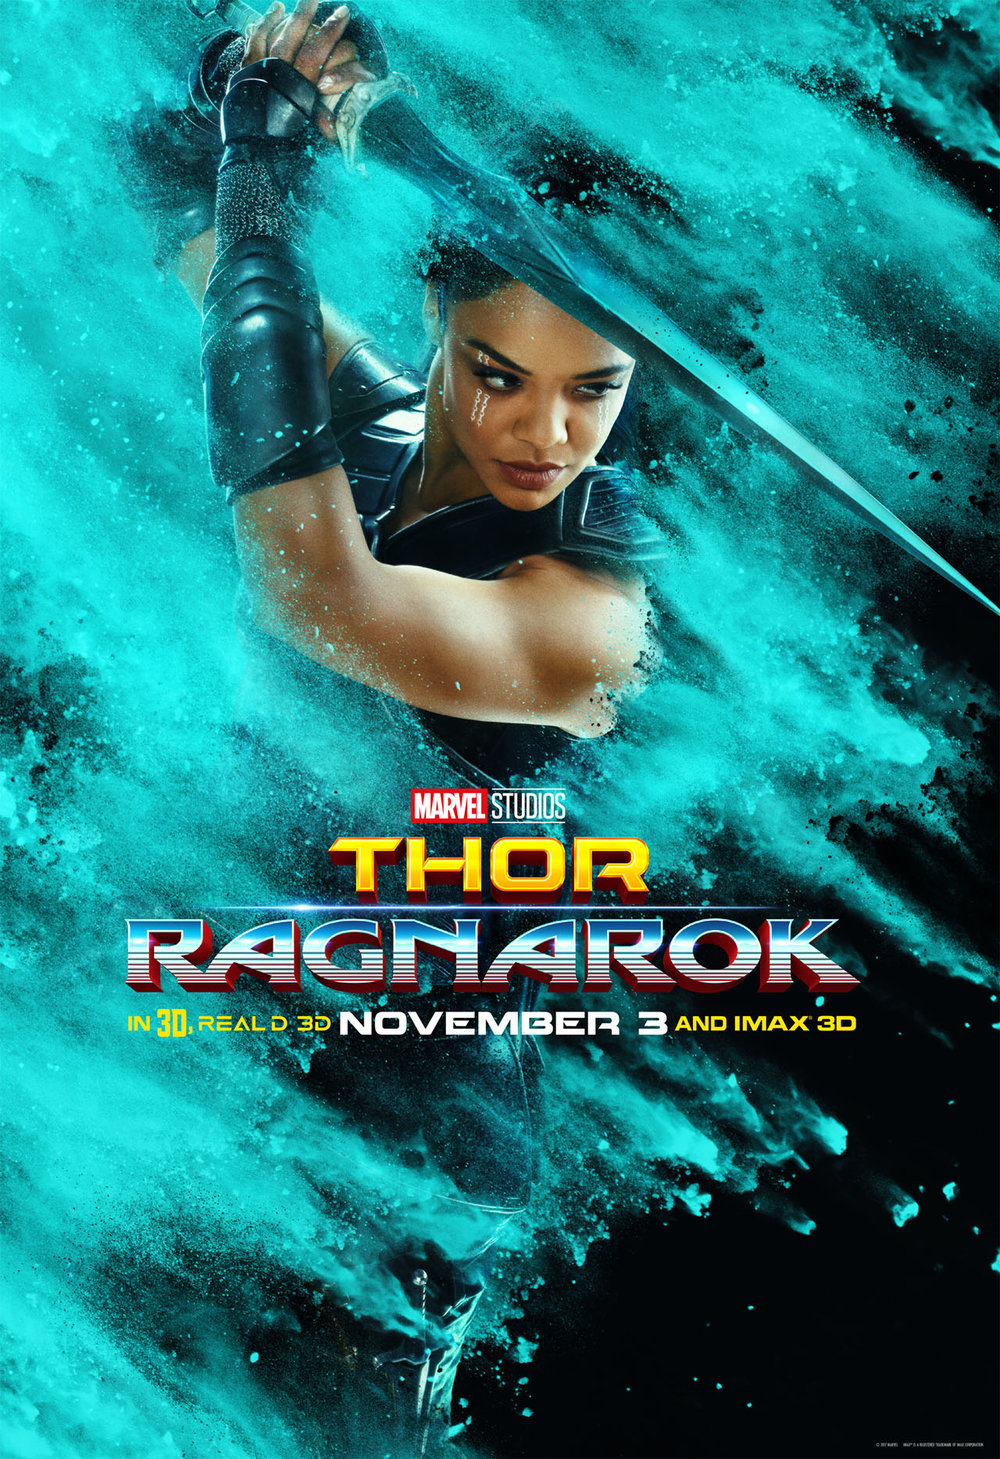 8-wild-thor-ragnarok-character-posters-give-the-heroes-and-villains-an-explosion-of-color3.jpeg